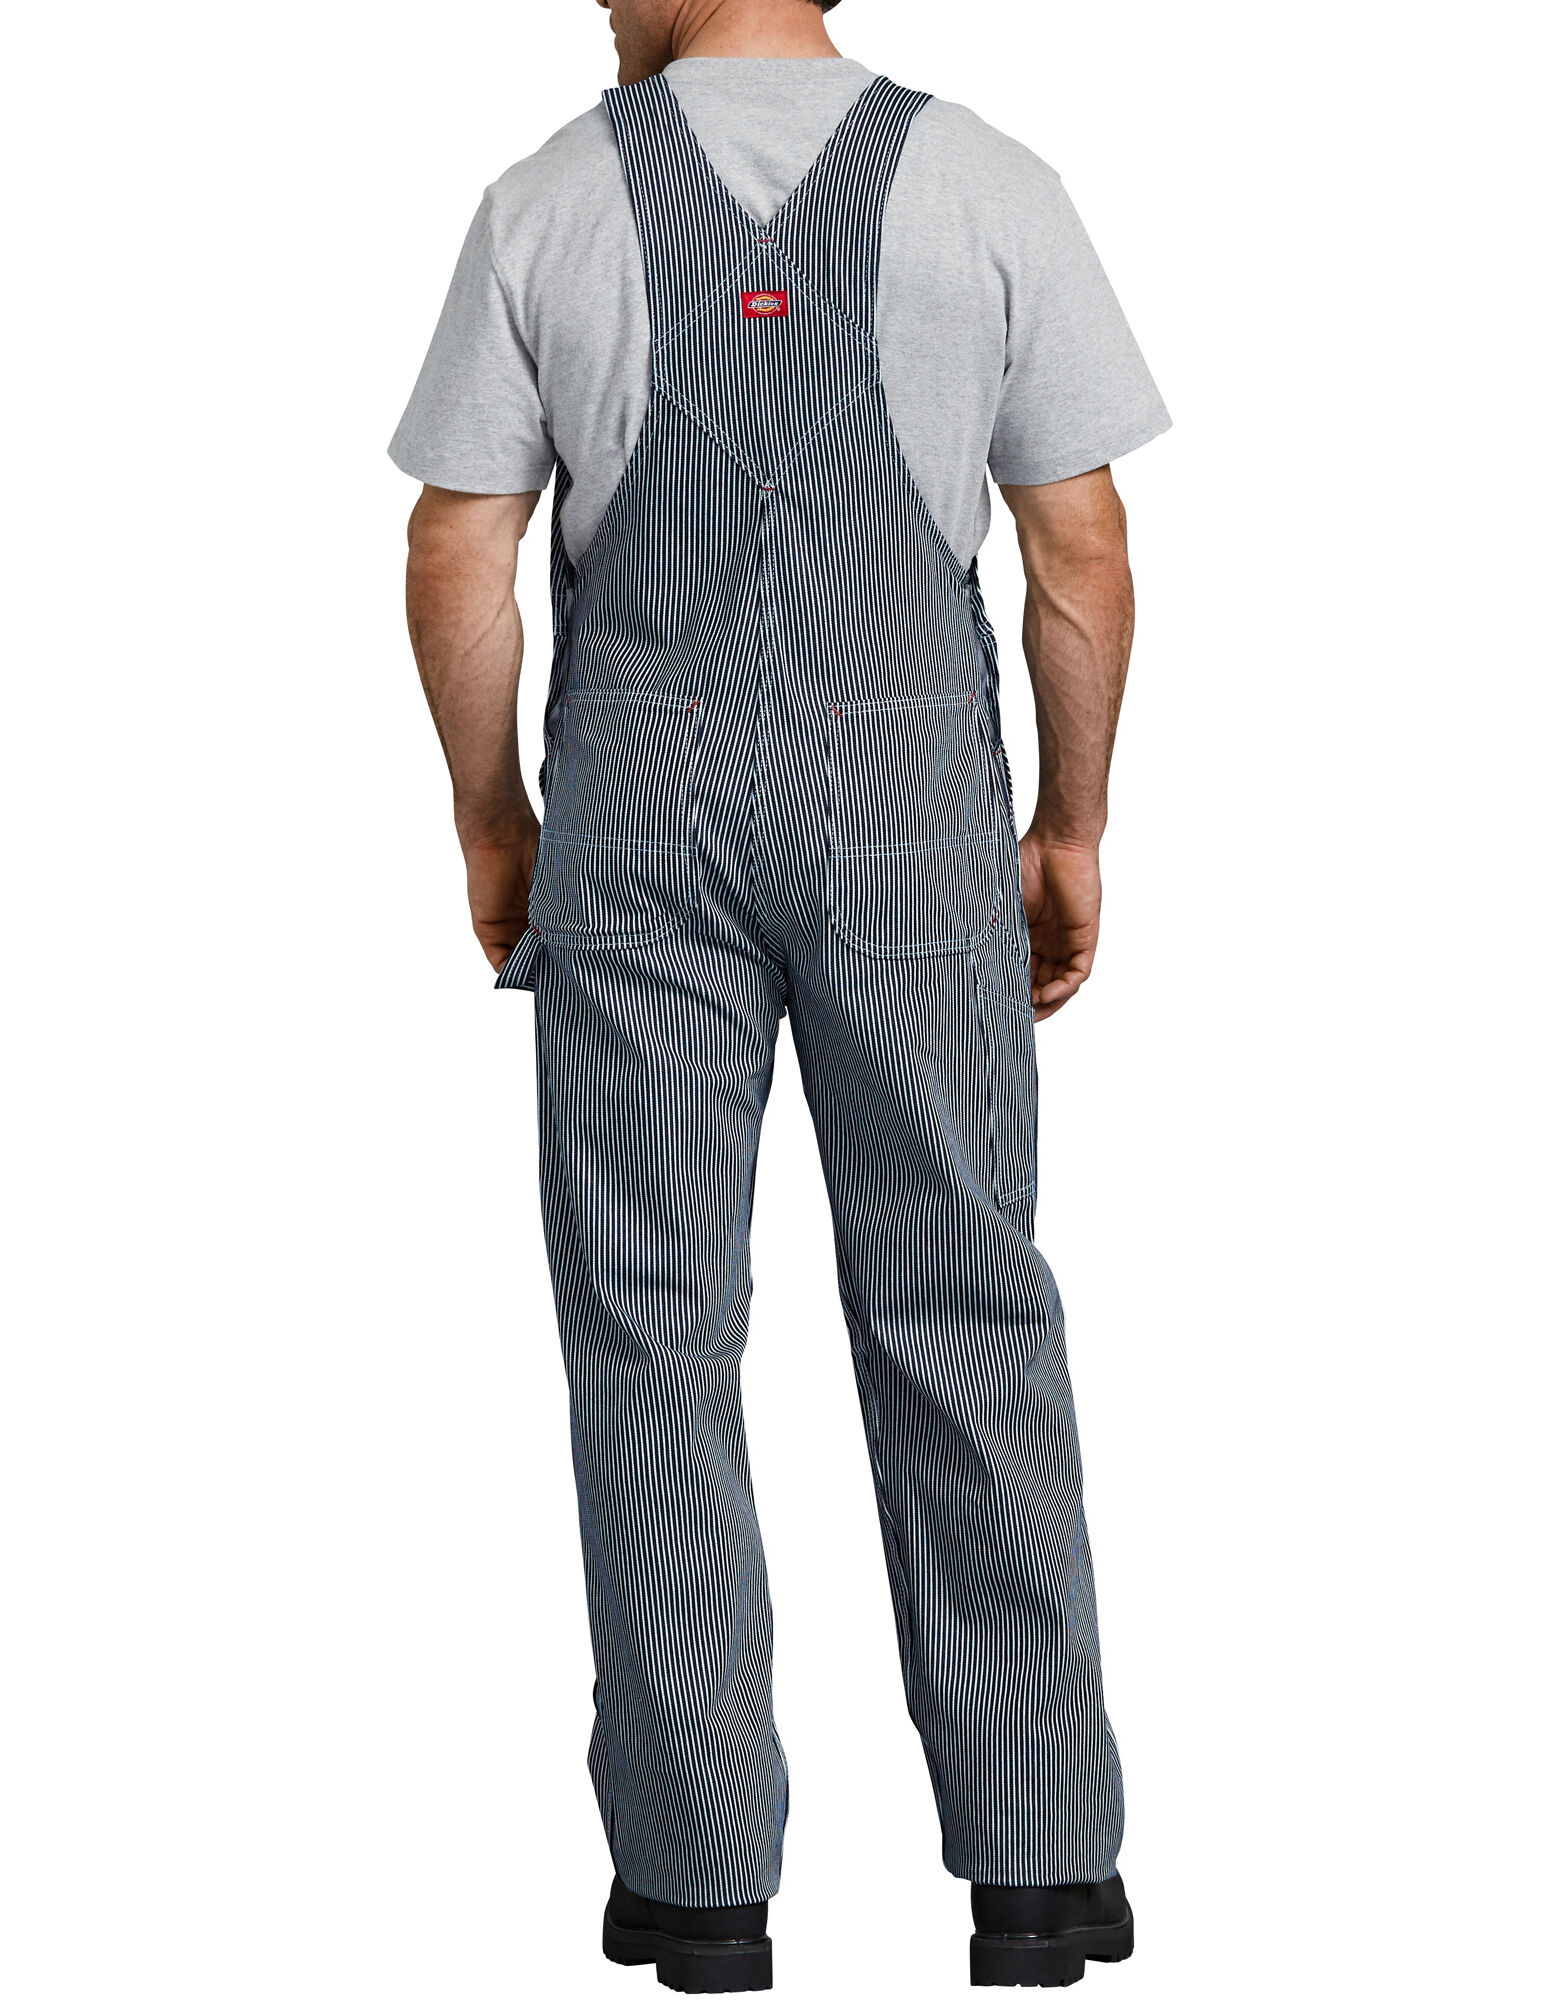 great quality great fit latest style Hickory Stripe Bib Overall